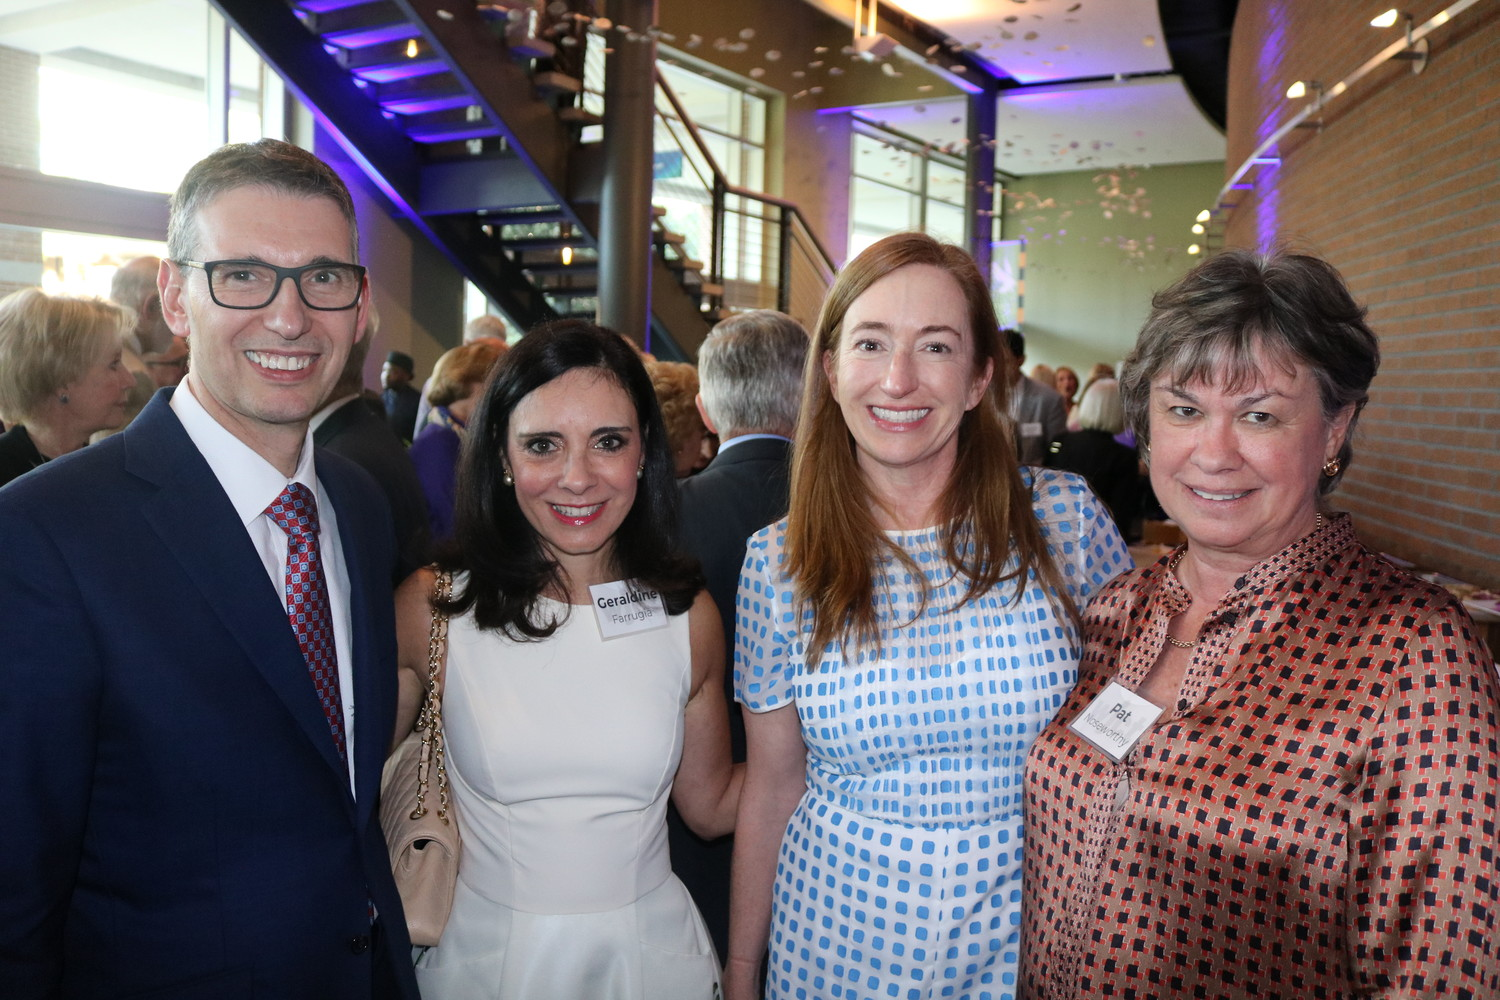 Mayo Clinic President and CEO Gianrico Farrugia with his wife Geraldine, Una Jackman and Pat Noseworthy